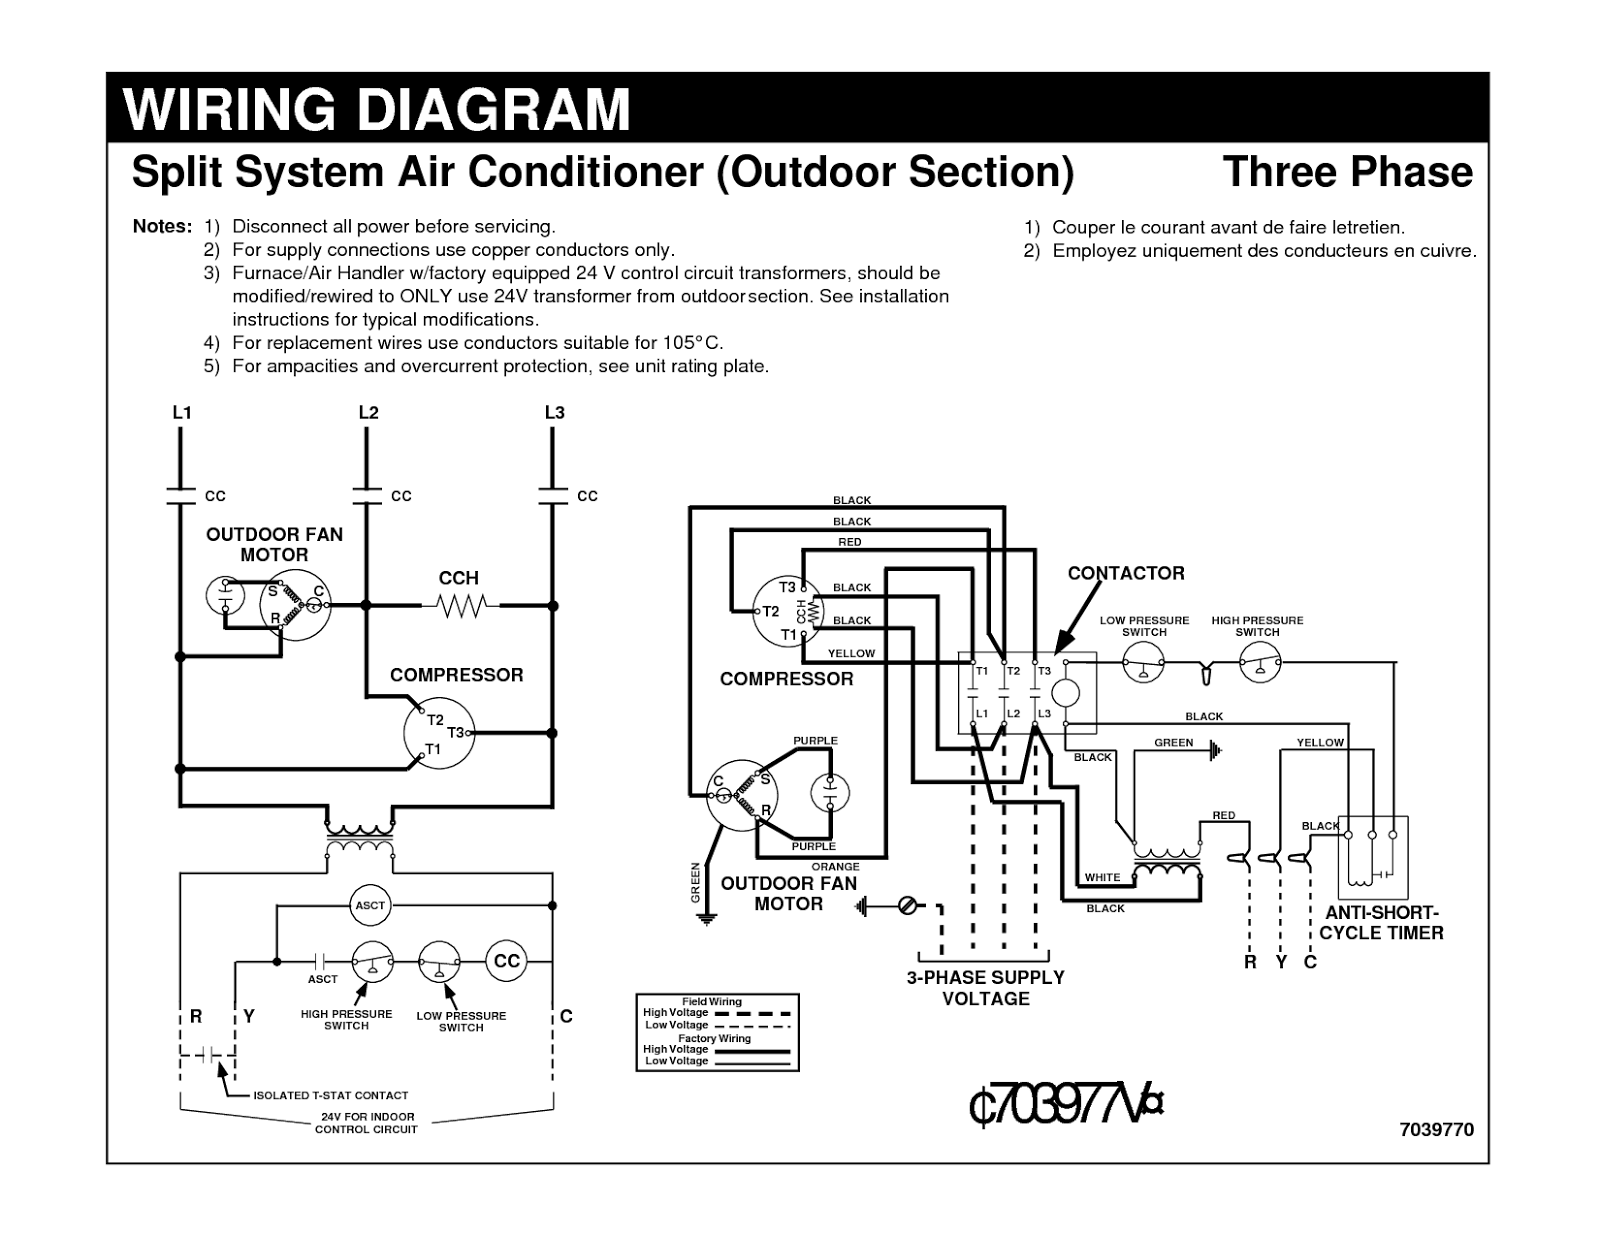 hight resolution of house wiring diagram hvac wiring diagrams rh 27 jennifer retzke de hvac electrical wiring diagram symbols household diagrams and schematics for hvac